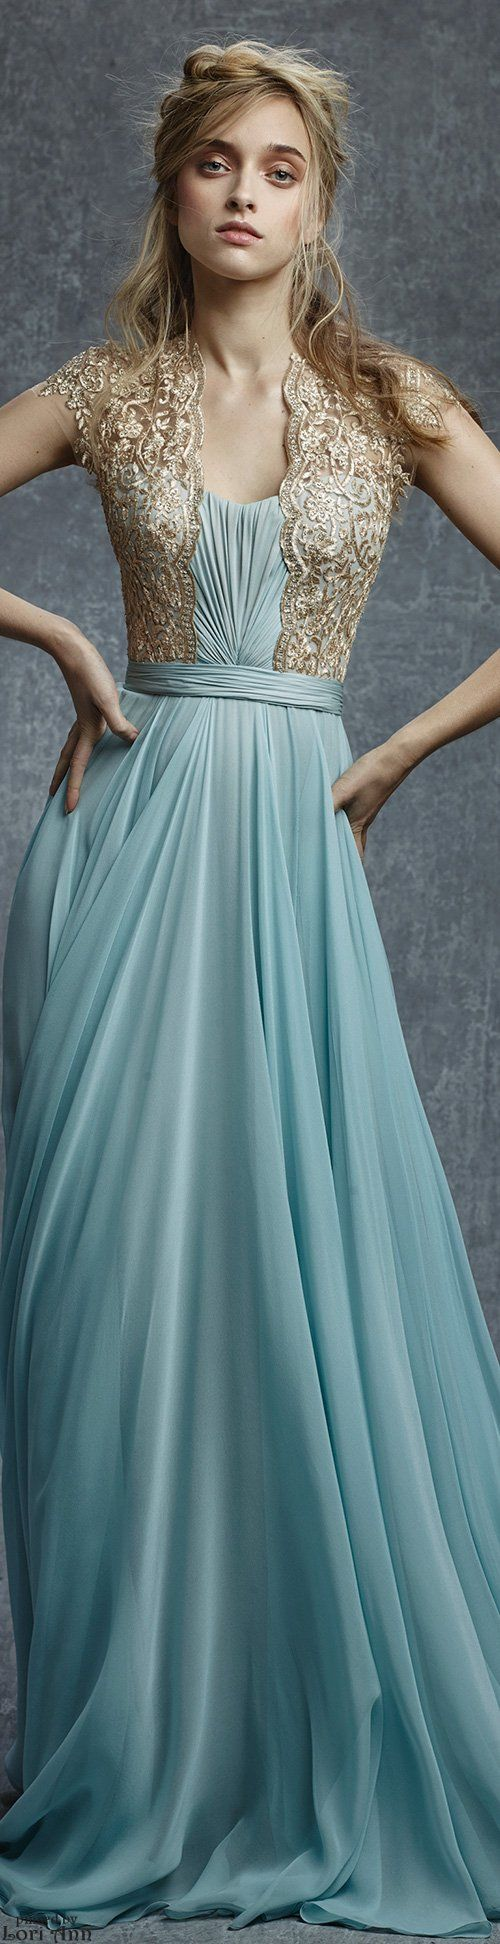 Reem Acra ~ Evening Gown, Aqua, Pre-Fall 2015 http://www.wedding-dressuk.co.uk/prom-dresses-uk63_1: